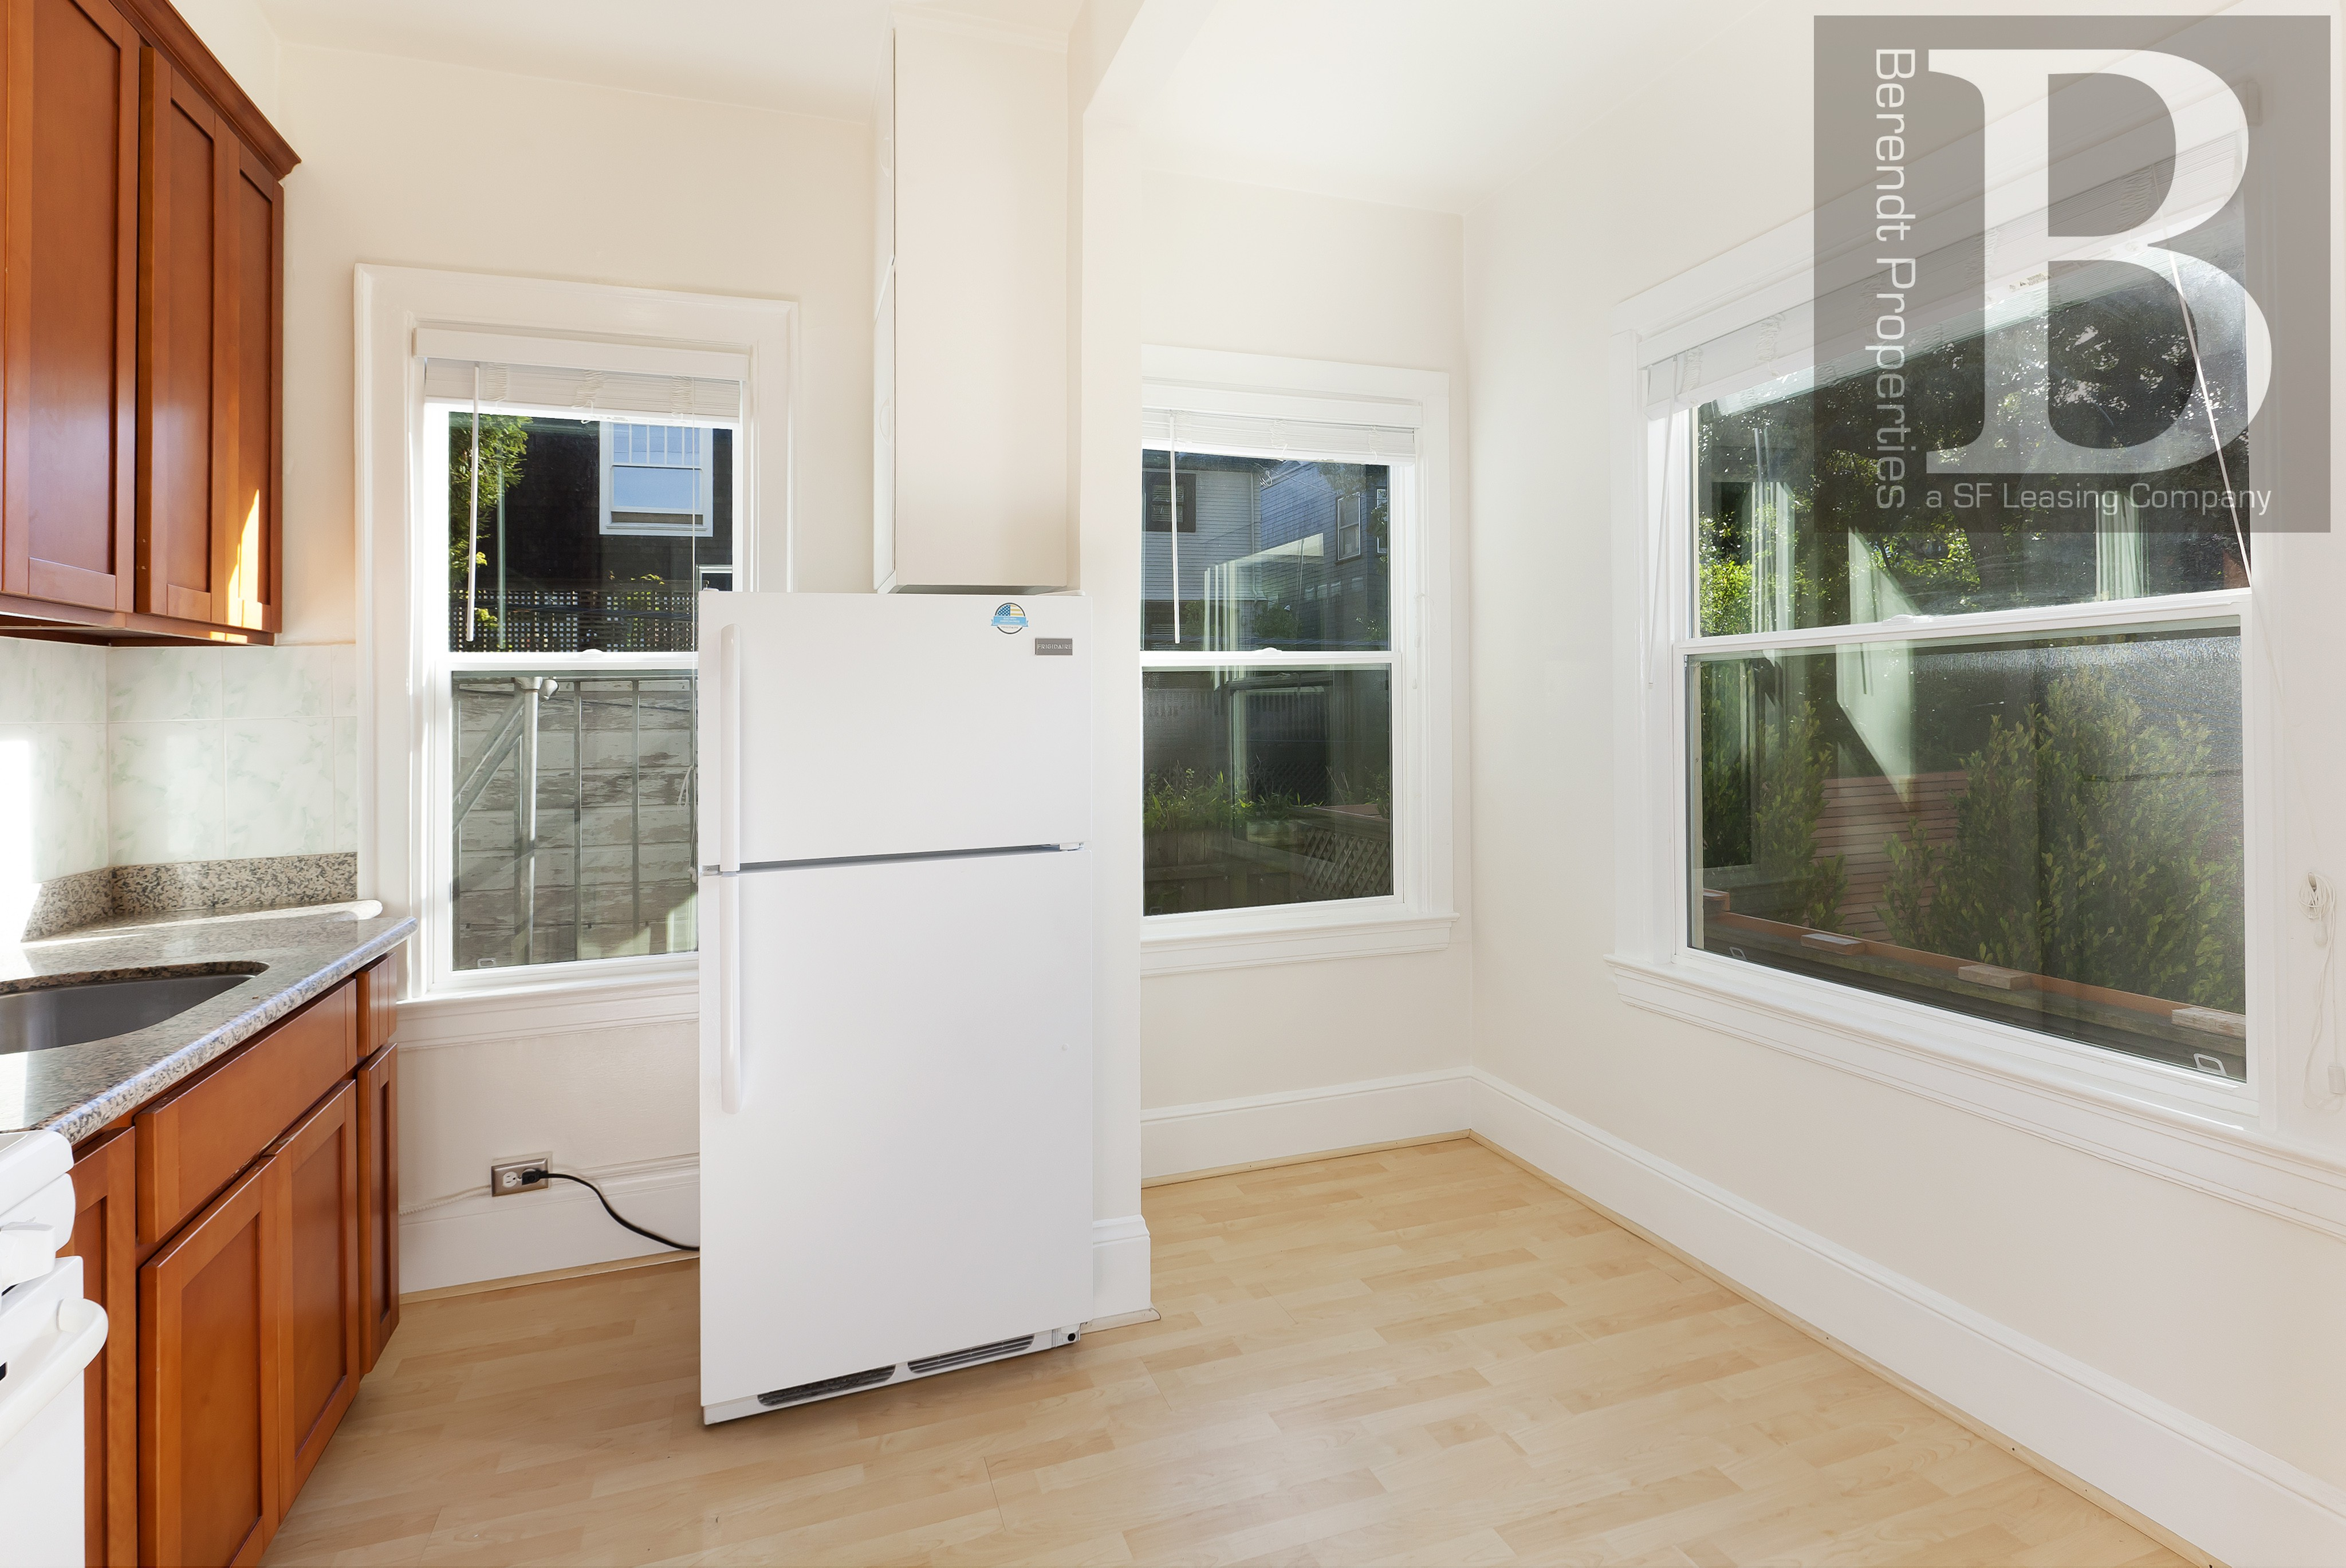 The Cheapest Apartment Rentals In Presidio Heights, Right ...